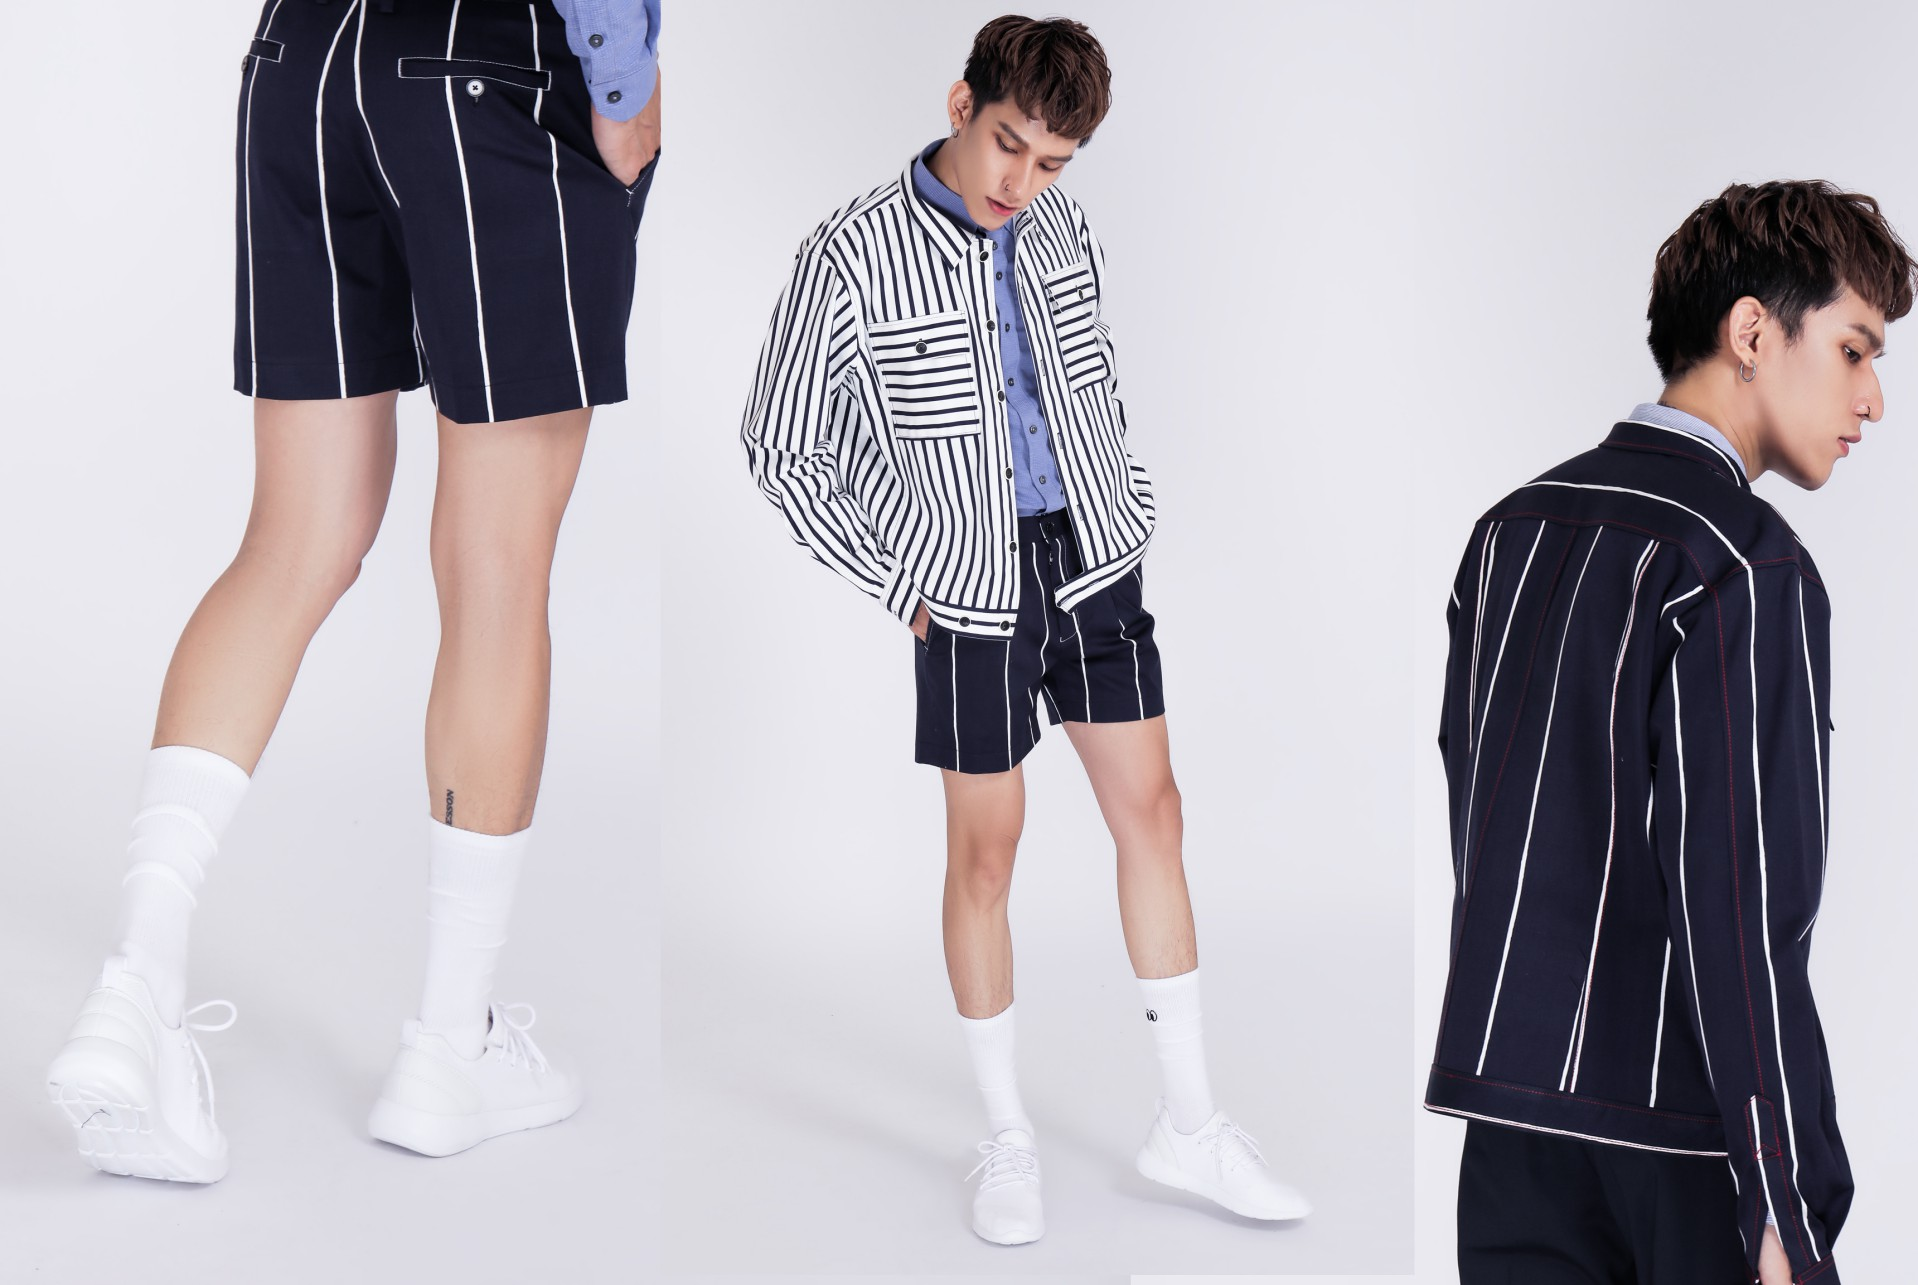 MAS MAN Summer 2018 Lookbook - What